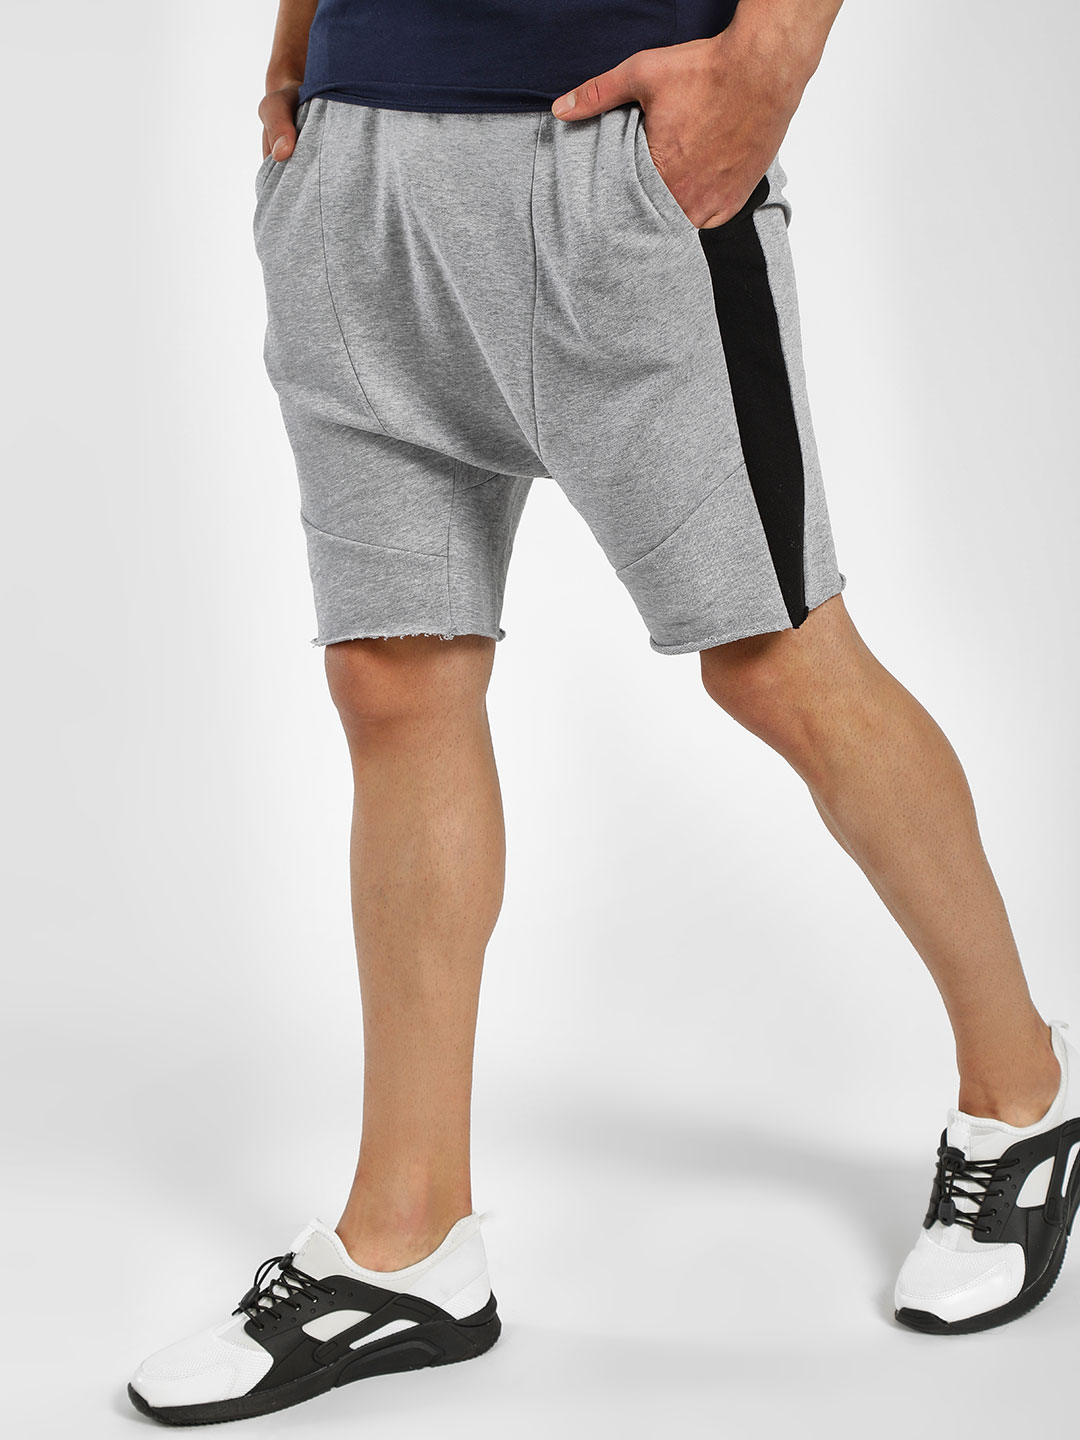 Adamo London Grey Melange Raw Edge Contrast Tape Shorts 1